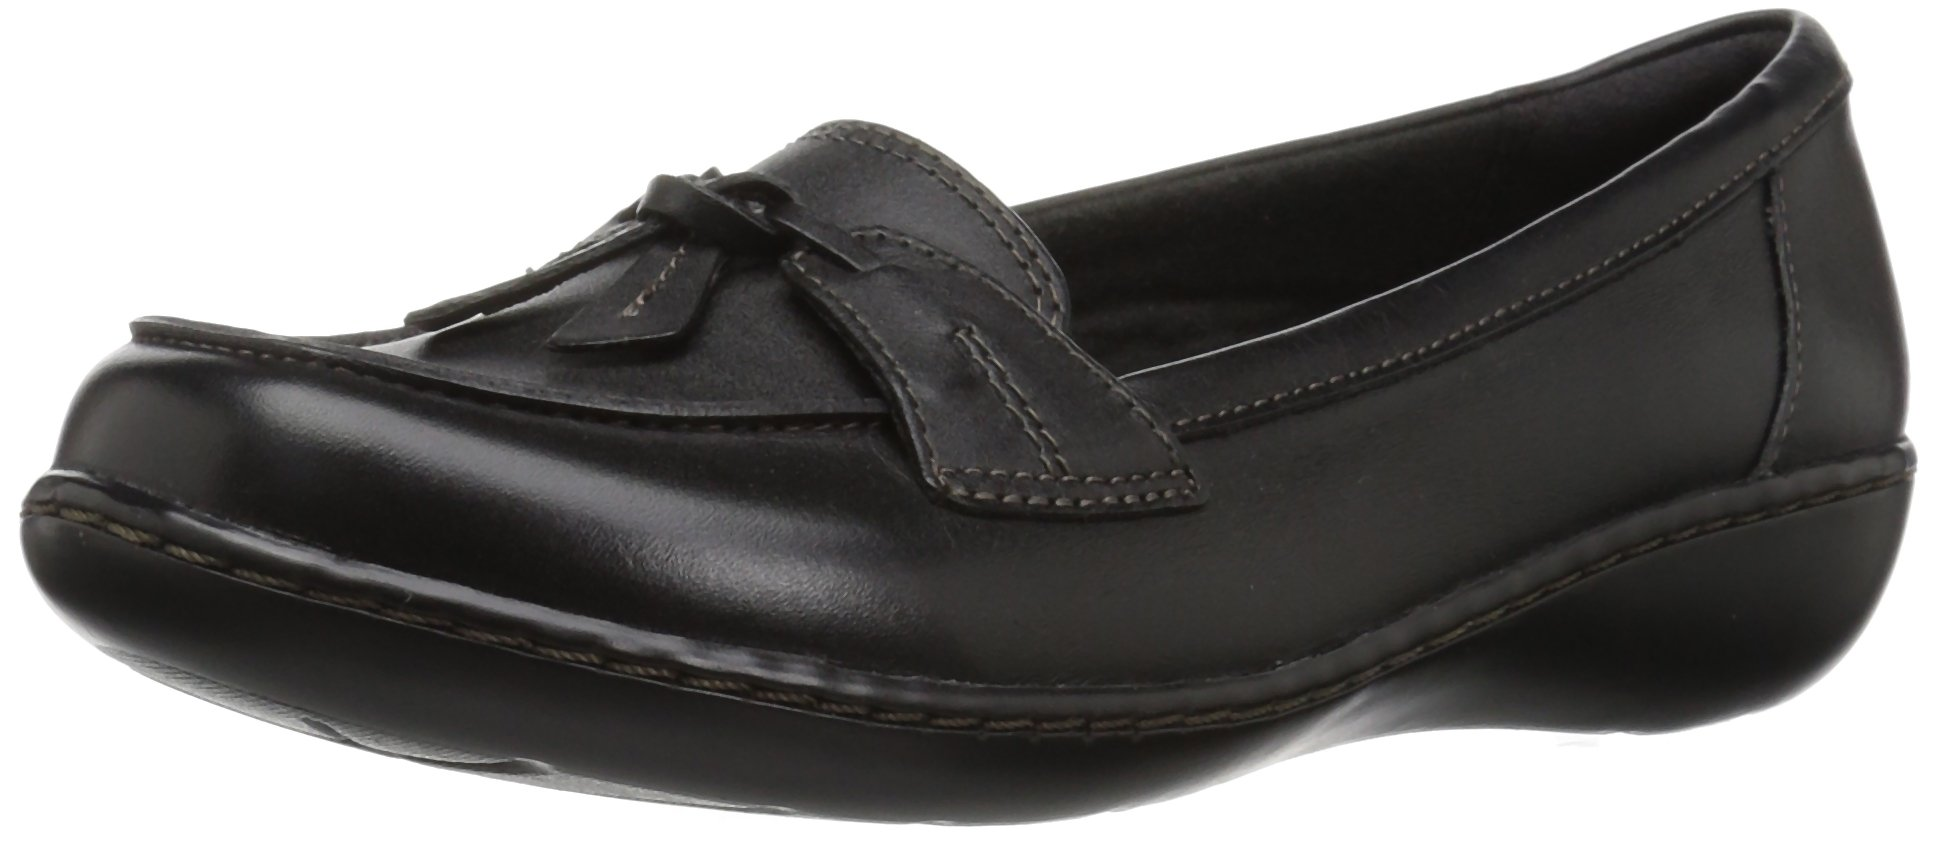 CLARKS Women's Ashland Bubble Slip-on Loafer, Black Leather, 10 W US